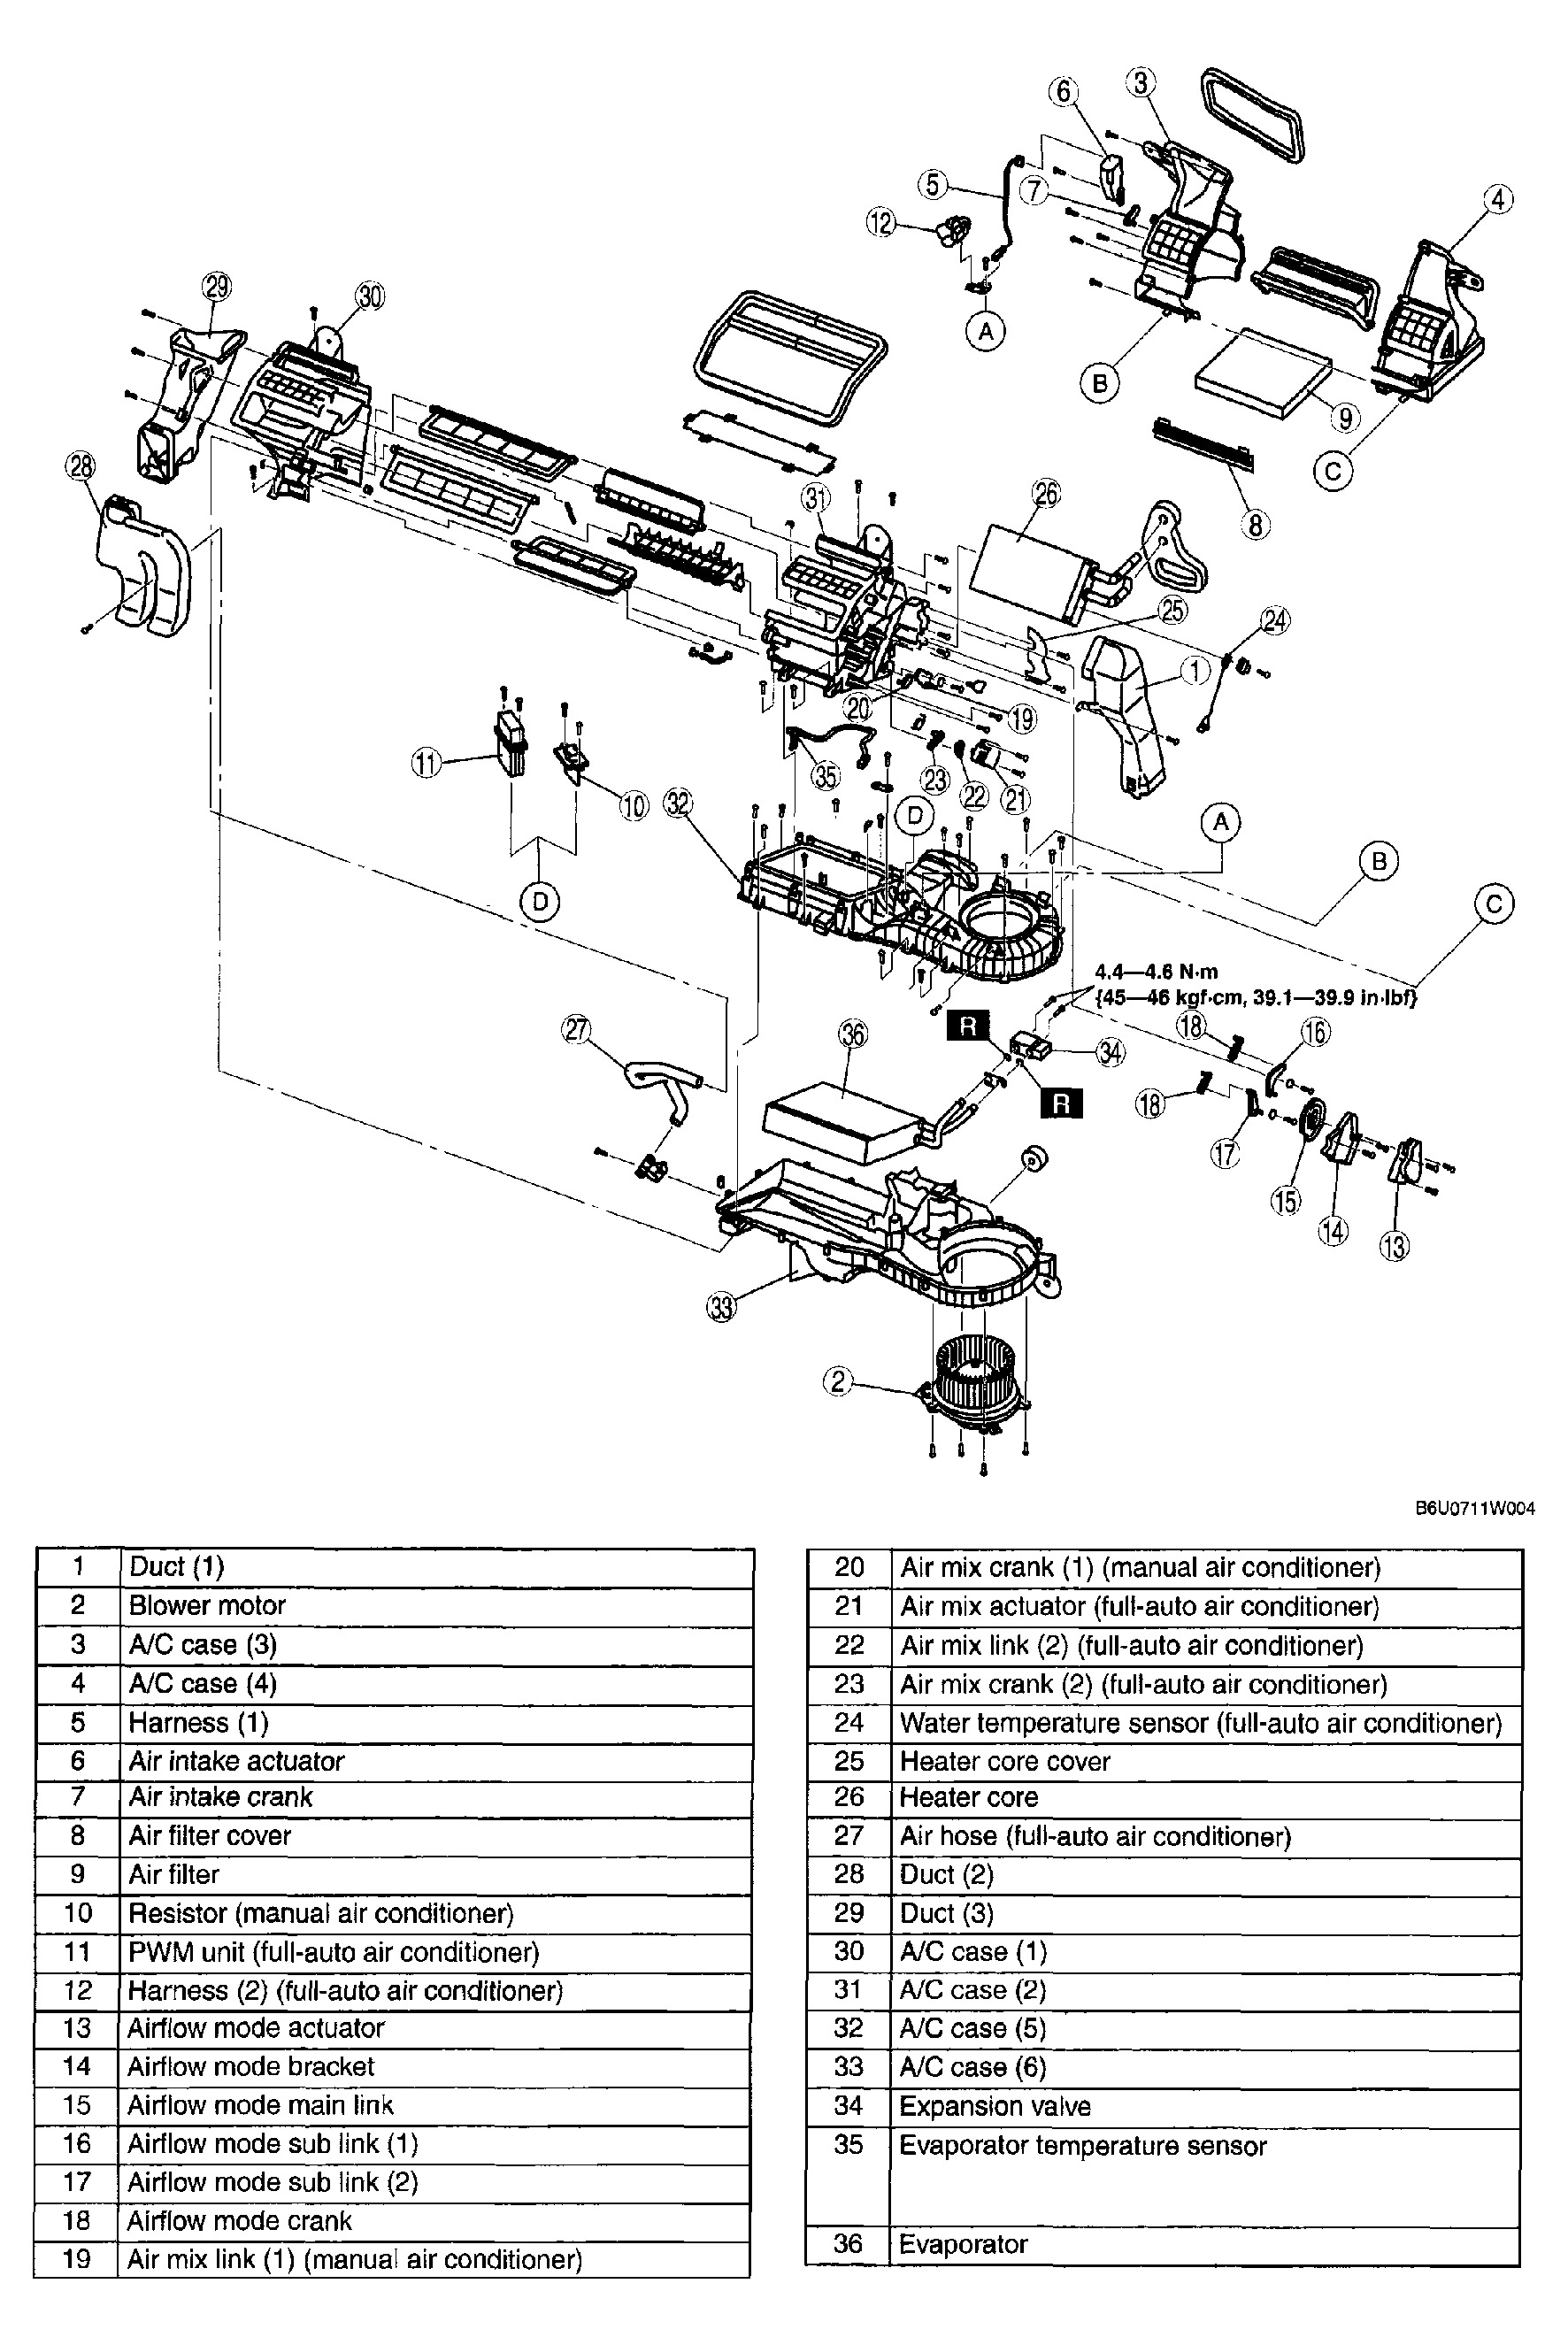 1993 suzuki swift fuse box  suzuki  auto fuse box diagram